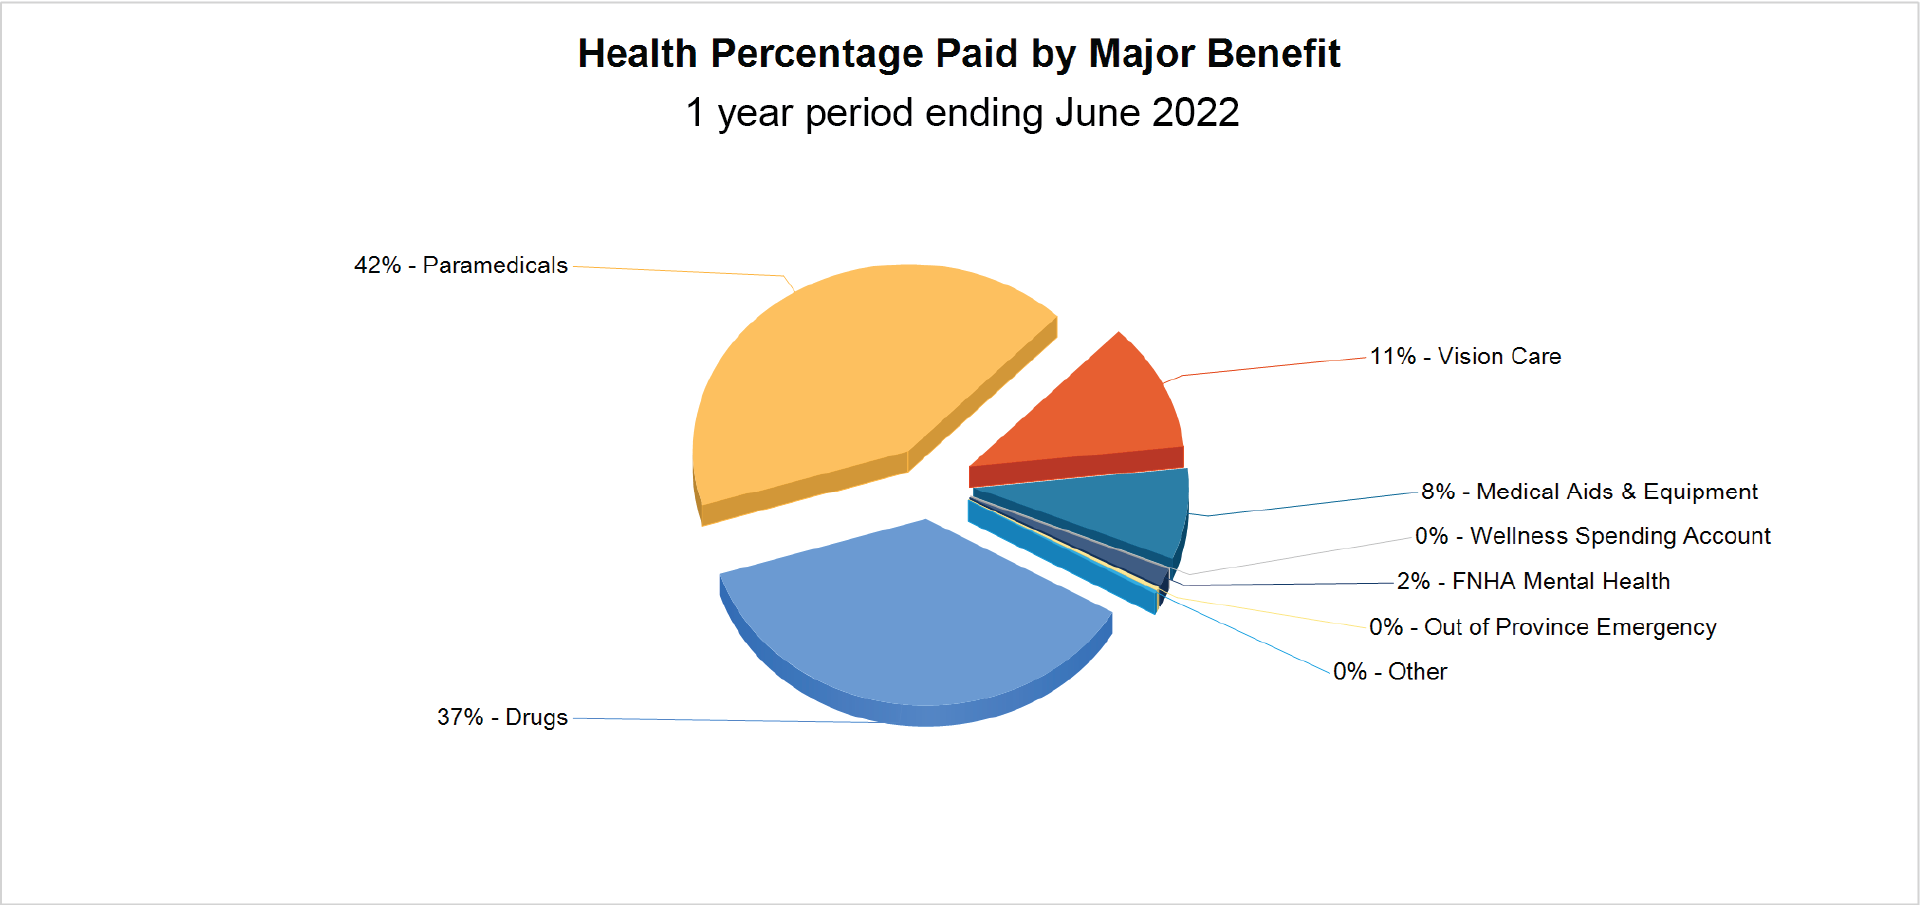 Health Percentage Paid By Major Benefit